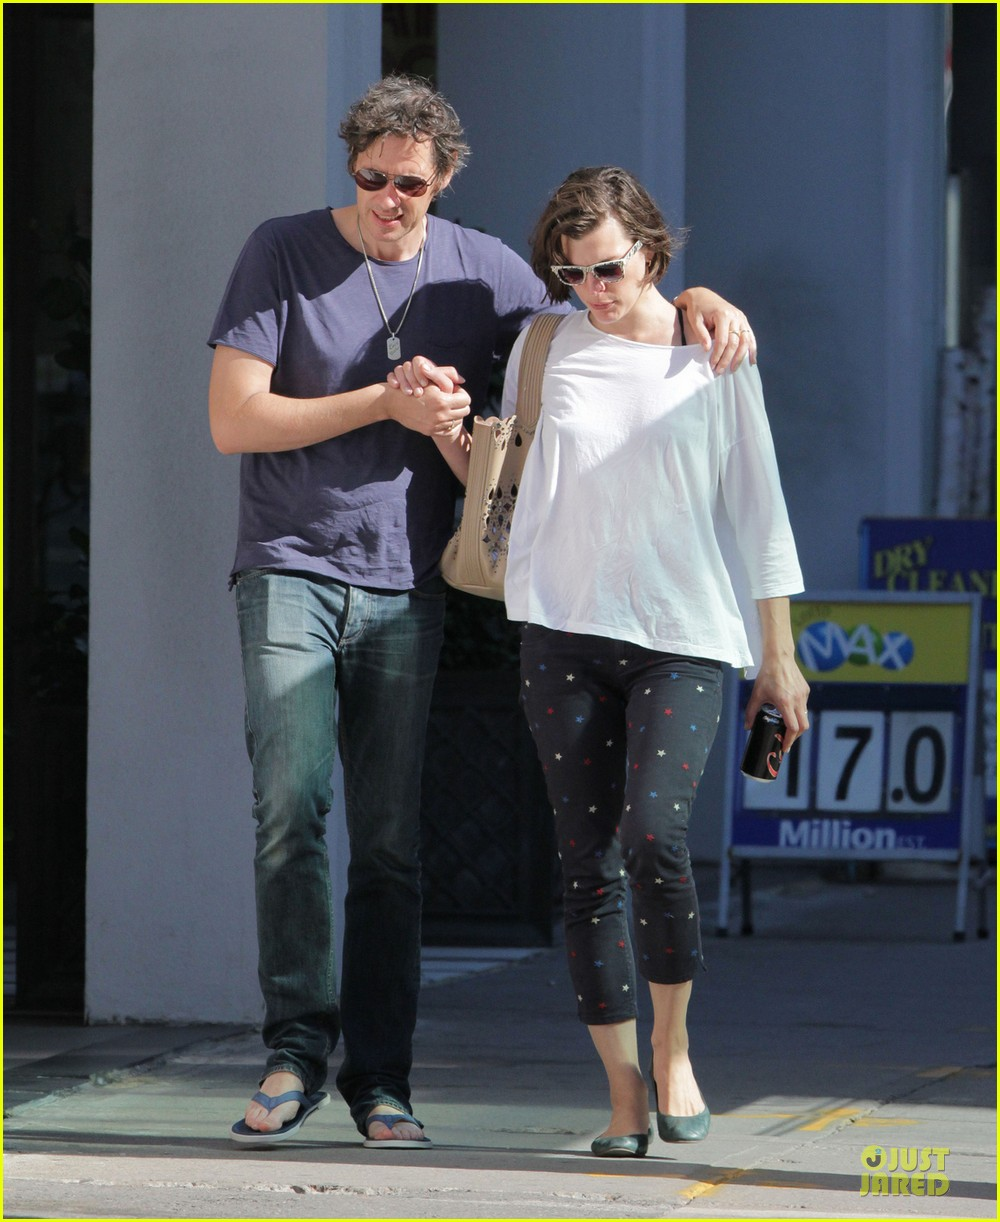 milla jovovich paul ws anderson hold hands in toronto 032909039